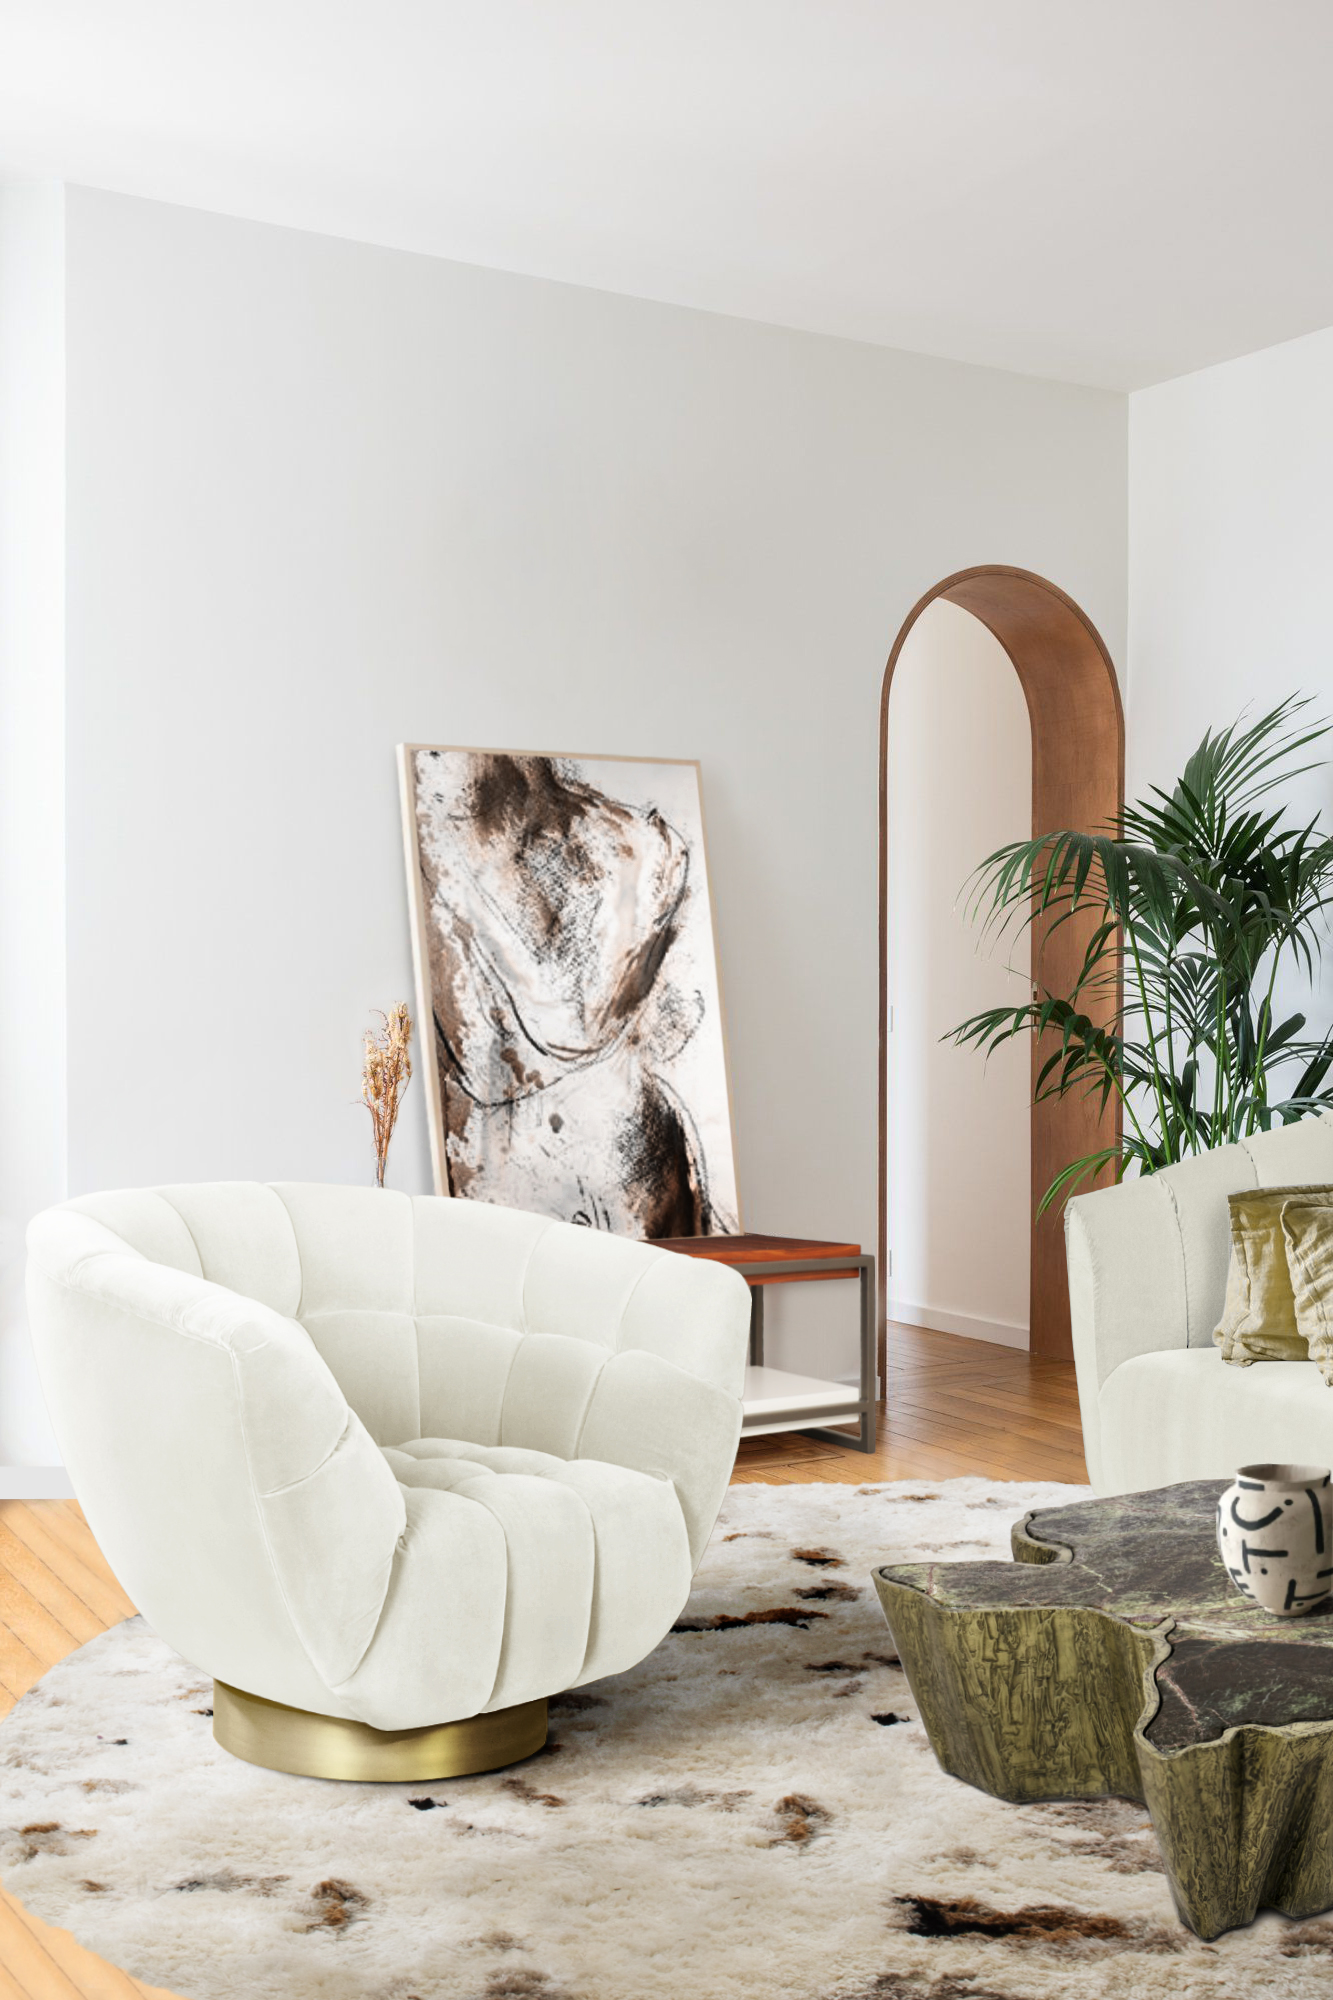 The New Free Spring Trends Ebook - Discover The Best Of Rug'Society spring trends ebook The New Free Spring Trends Ebook – Discover The Best Of Rug'Society oslo living room ii